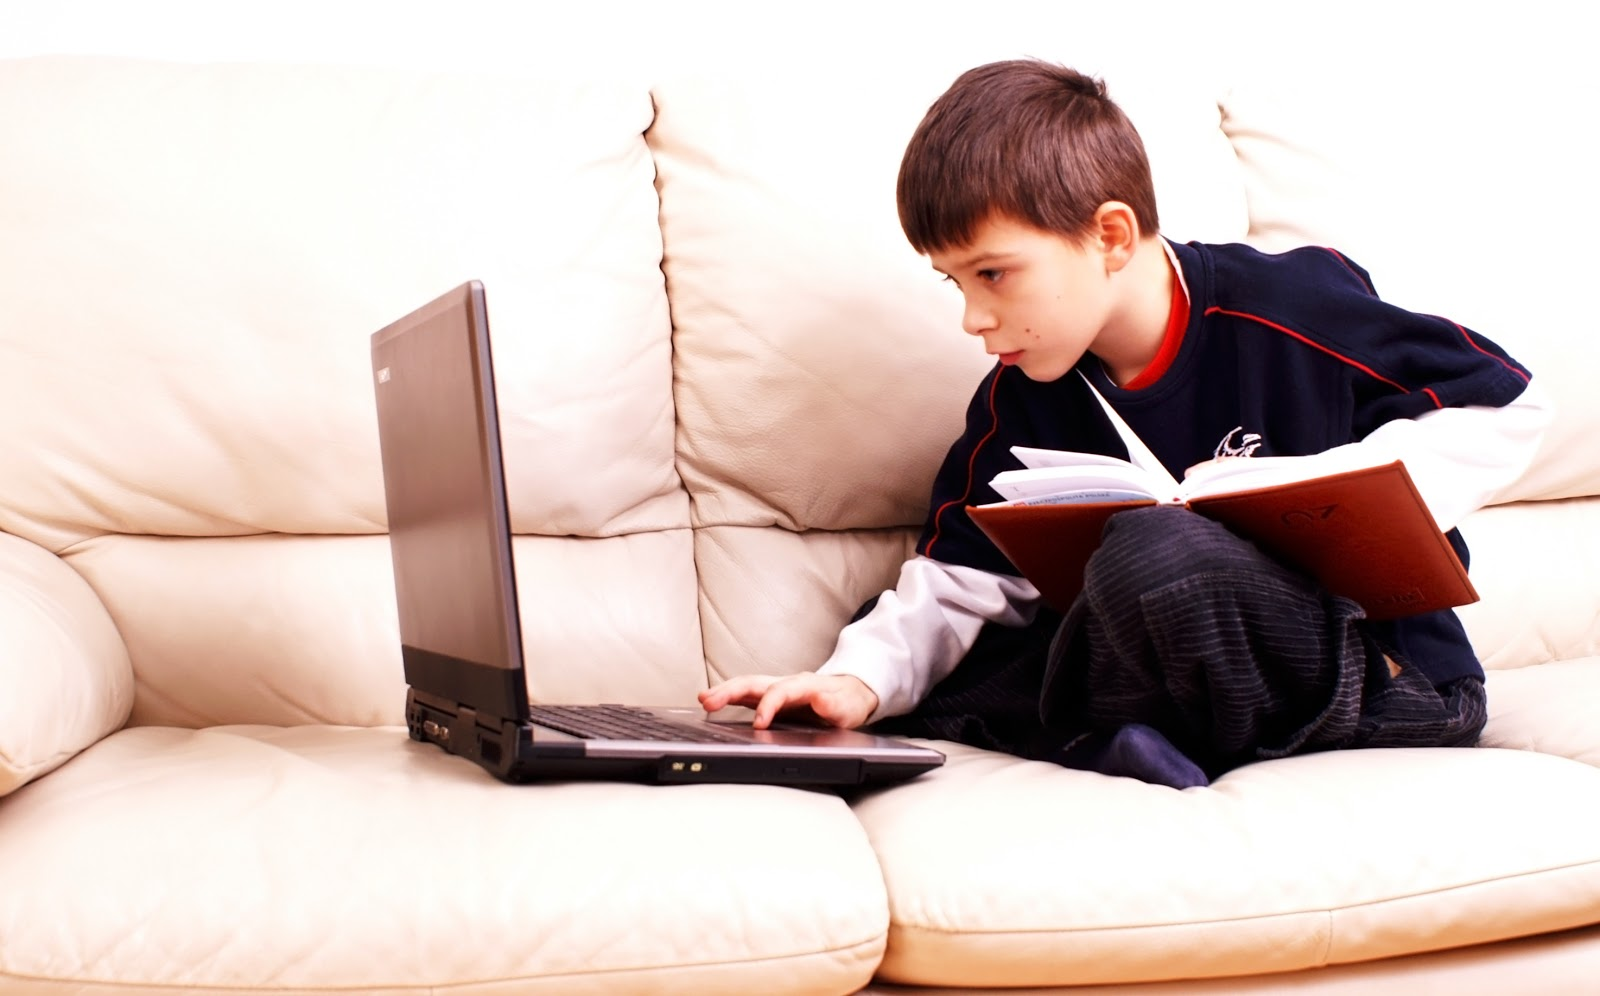 Boy Book Laptop AdobeStock 2788304